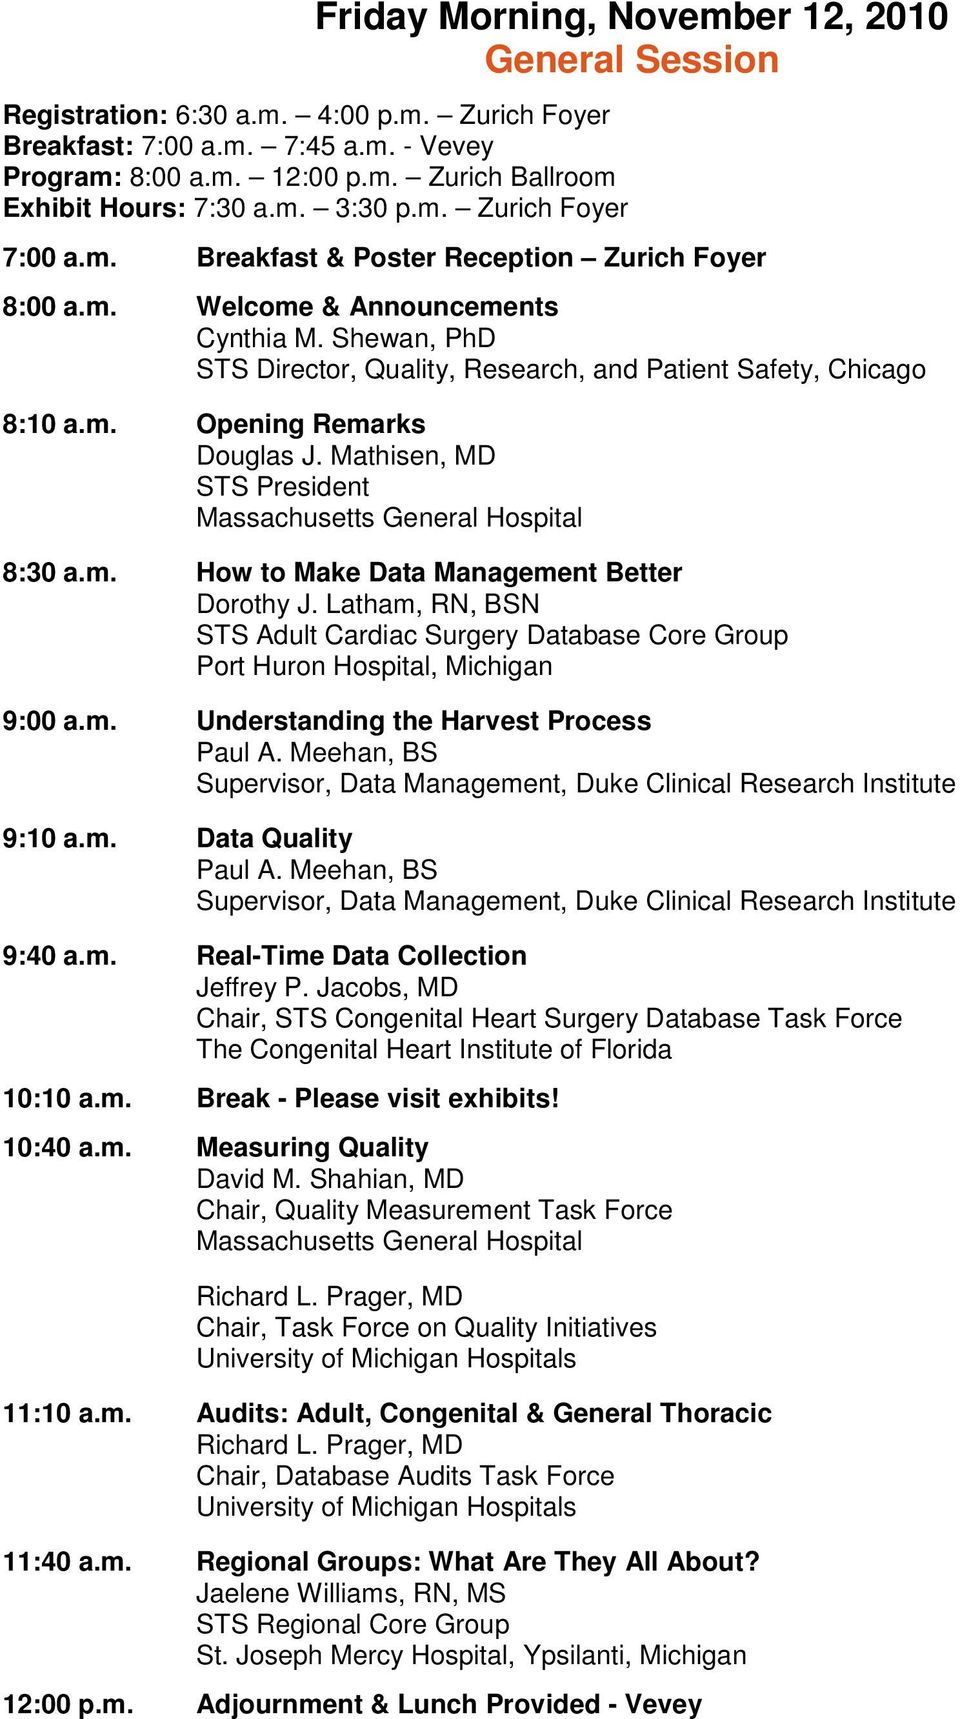 Shewan, PhD STS Director, Quality, Research, and Patient Safety, Chicago 8:10 a.m. Opening Remarks Douglas J. Mathisen, MD STS President Massachusetts General Hospital 8:30 a.m. How to Make Data Management Better 9:00 a.